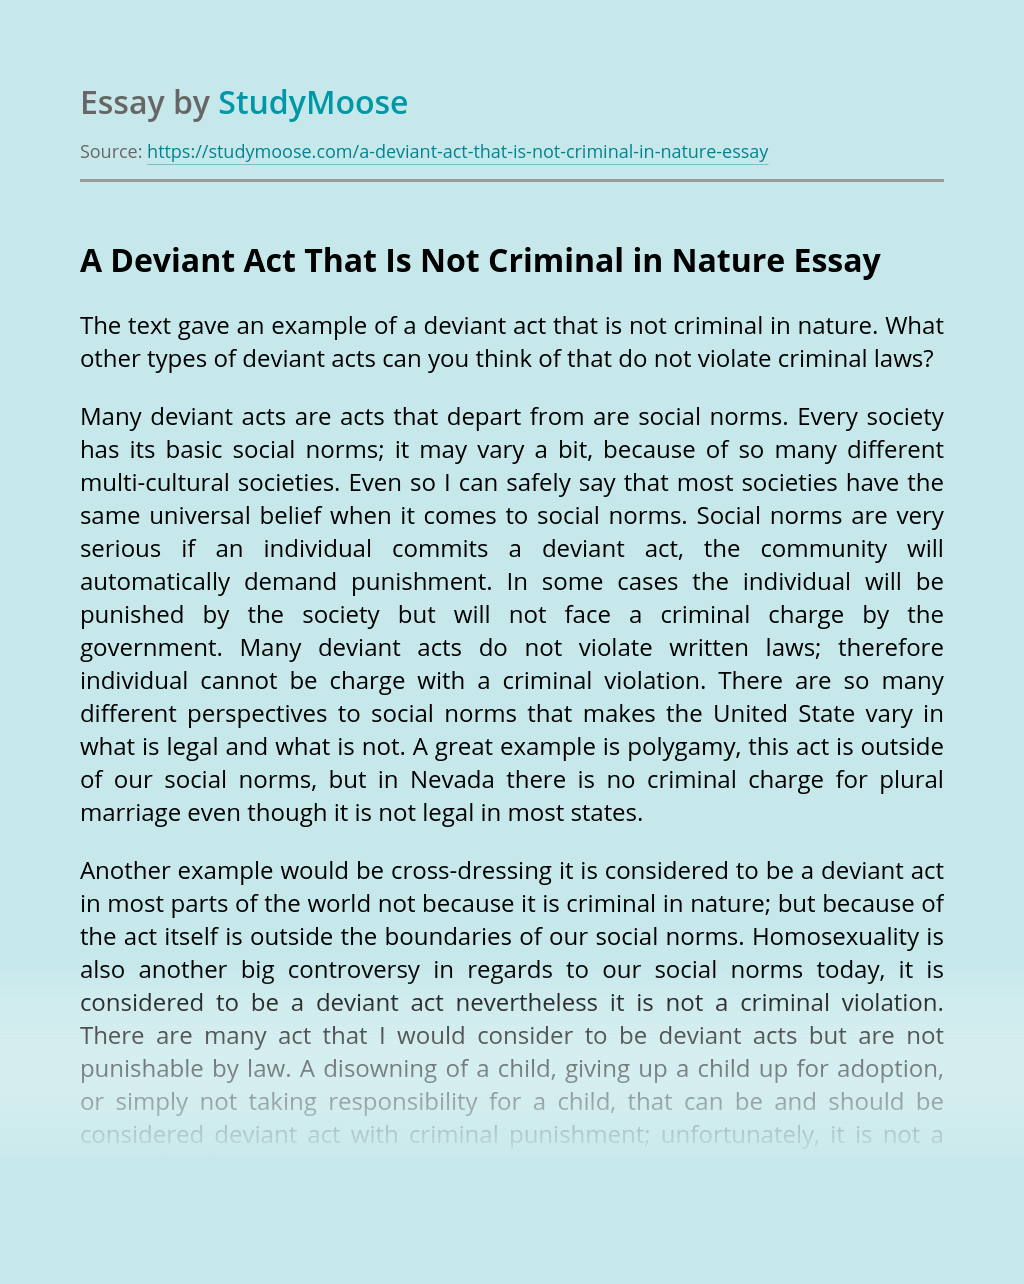 A Deviant Act That Is Not Criminal in Nature